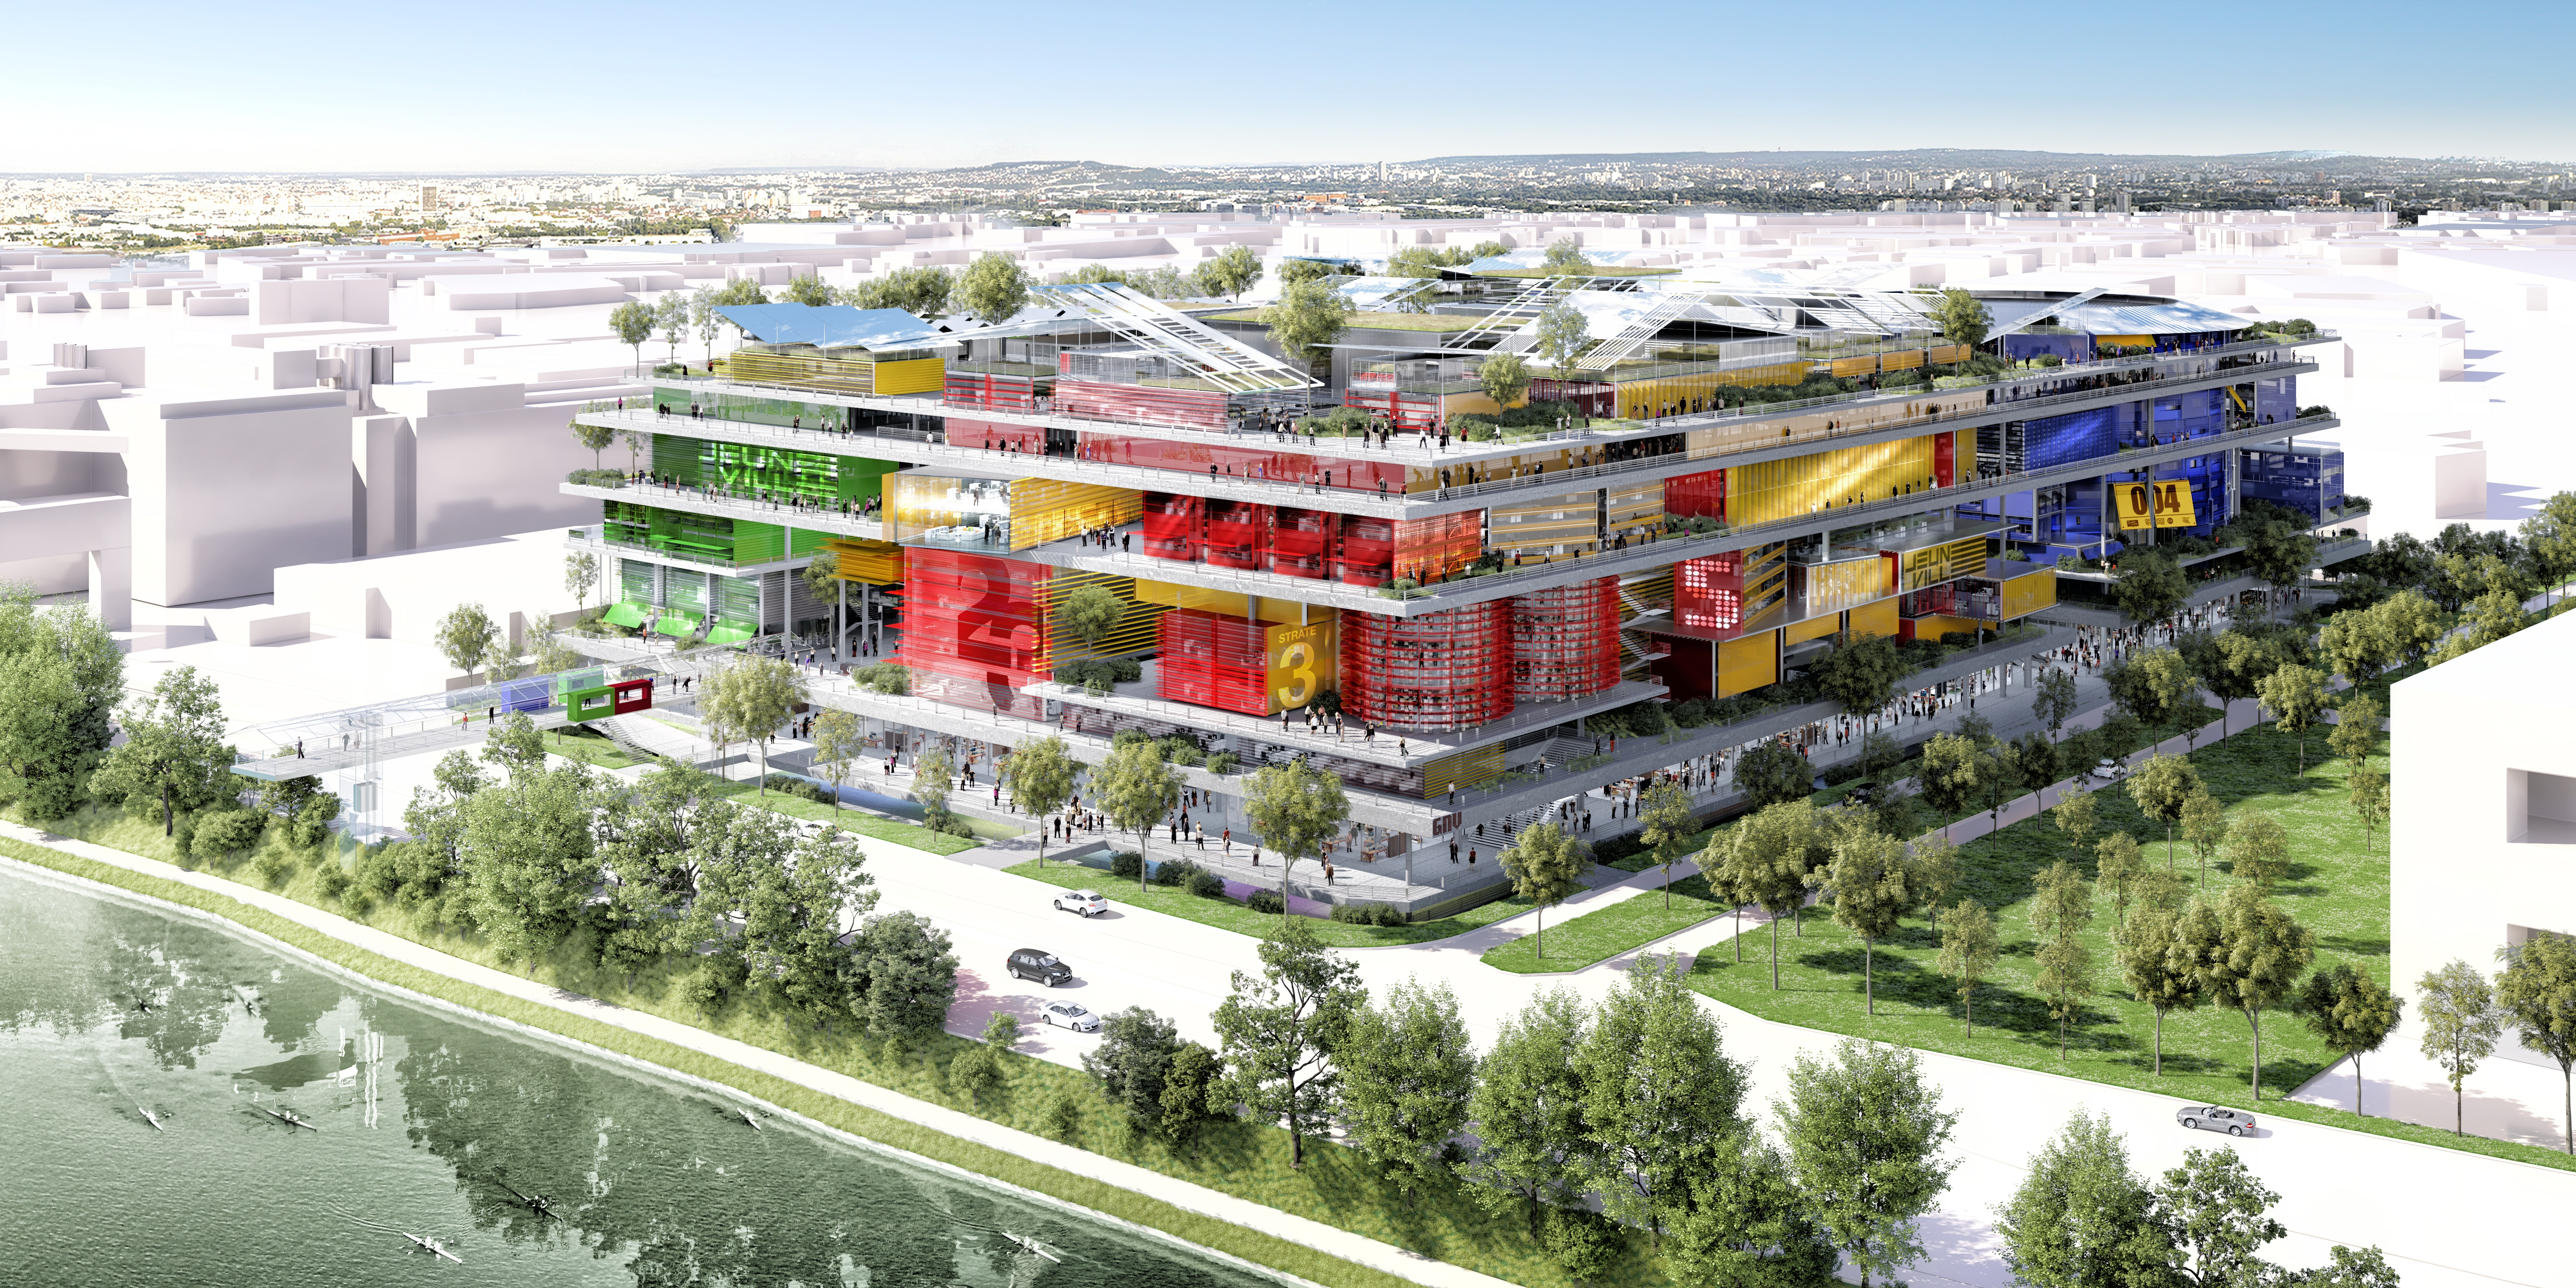 Jeuneville is expected to begin construction in 2022, with completion slated for 2025